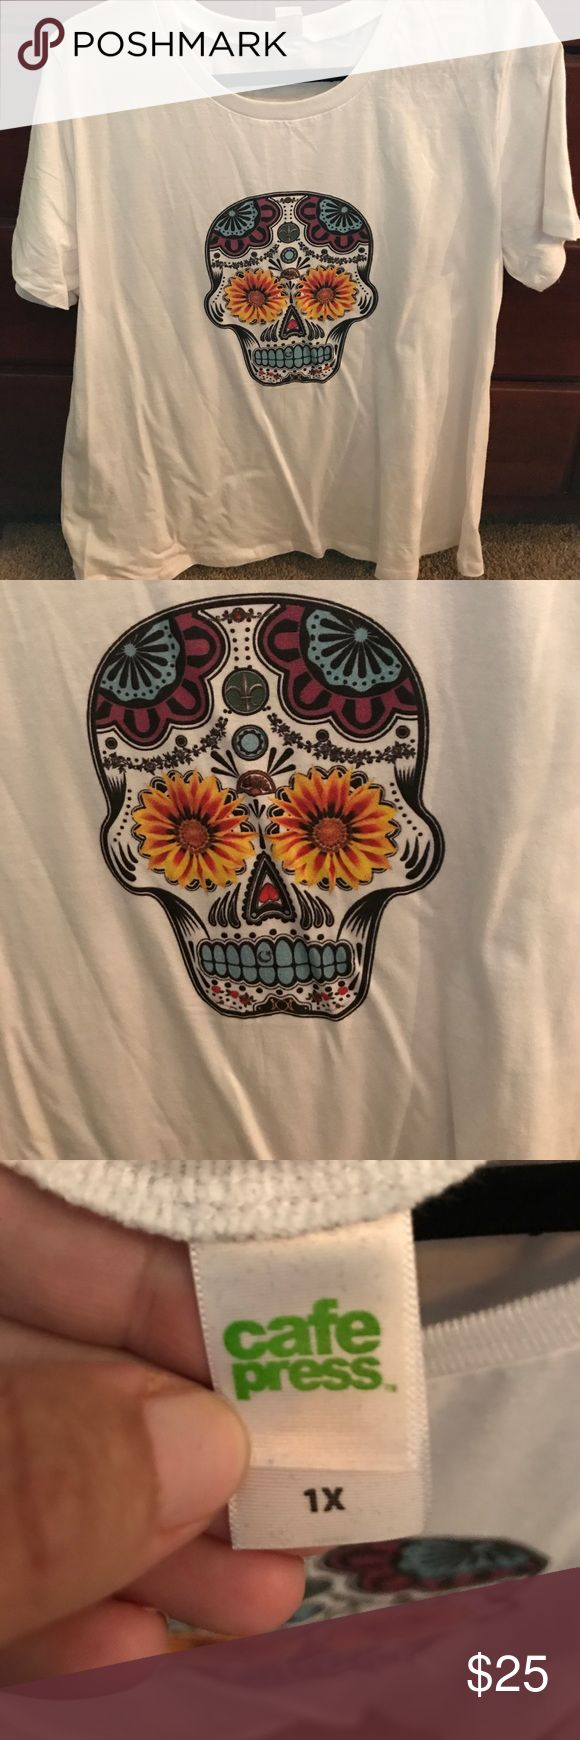 New WOT Cafe Press Sugar Skull t shirt 1X Cute new sugar skull white t shirt (Did not have tags attached, ordered it online) cafe press Tops Tees - Short Sleeve